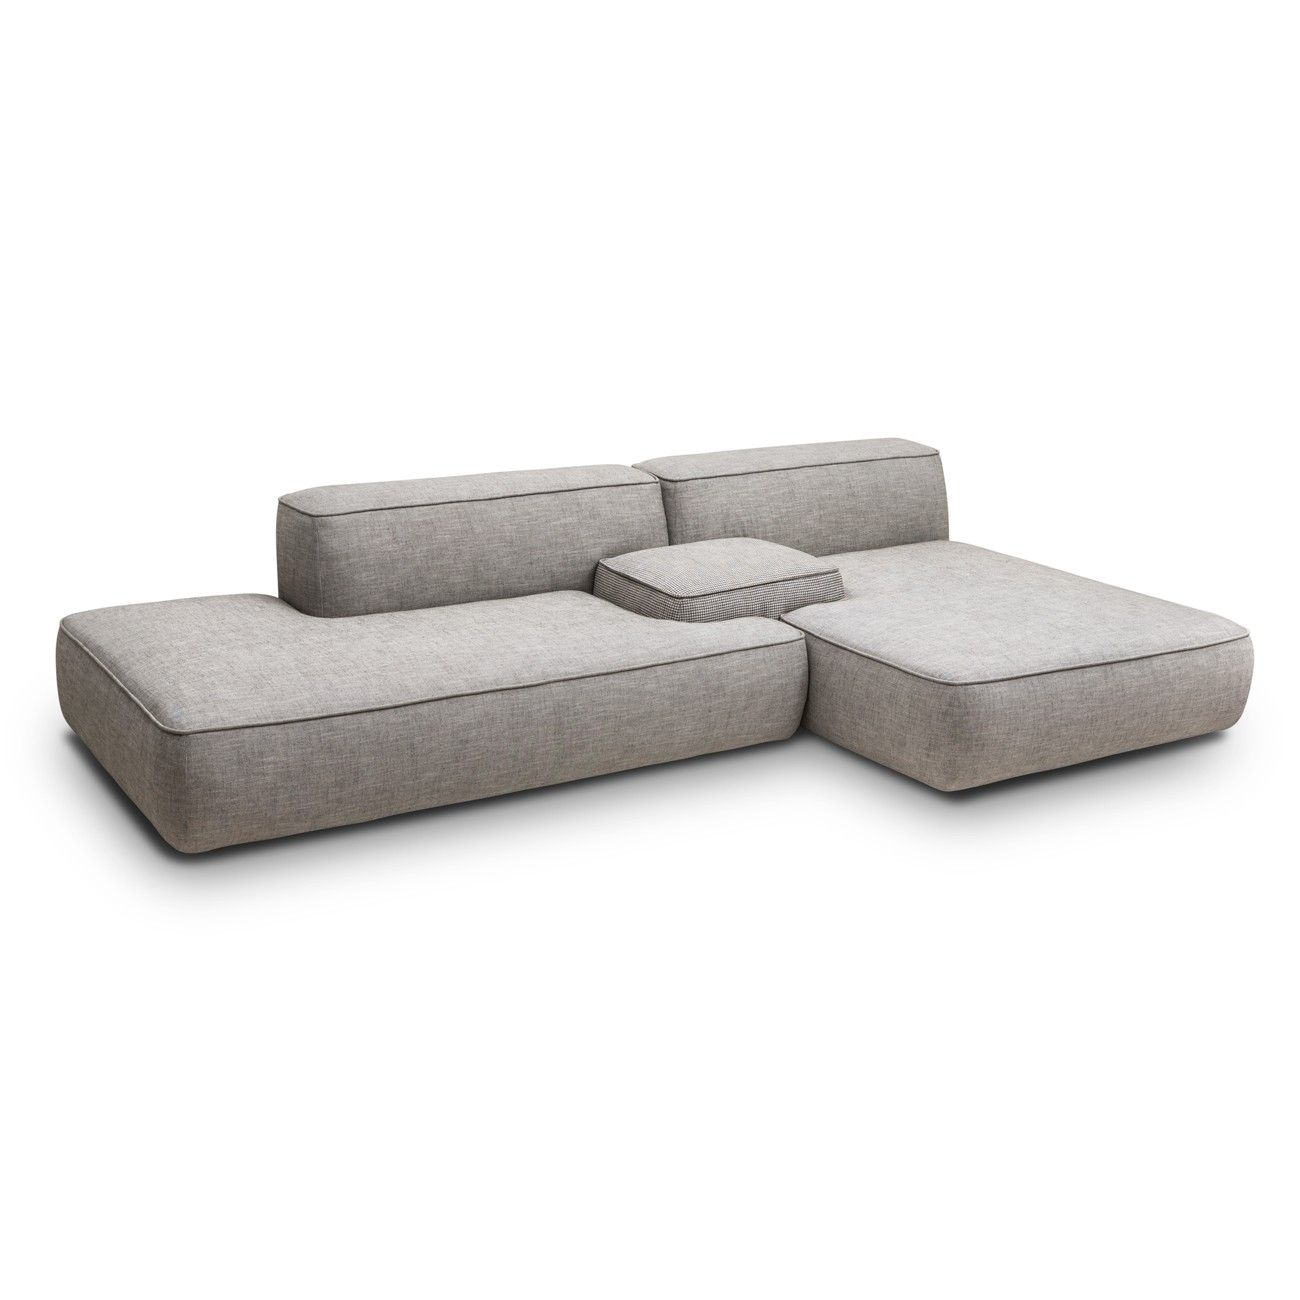 modular lounge with sofa bed adelaide mainstays 1 piece stretch fabric slipcover chaise in our magnesium